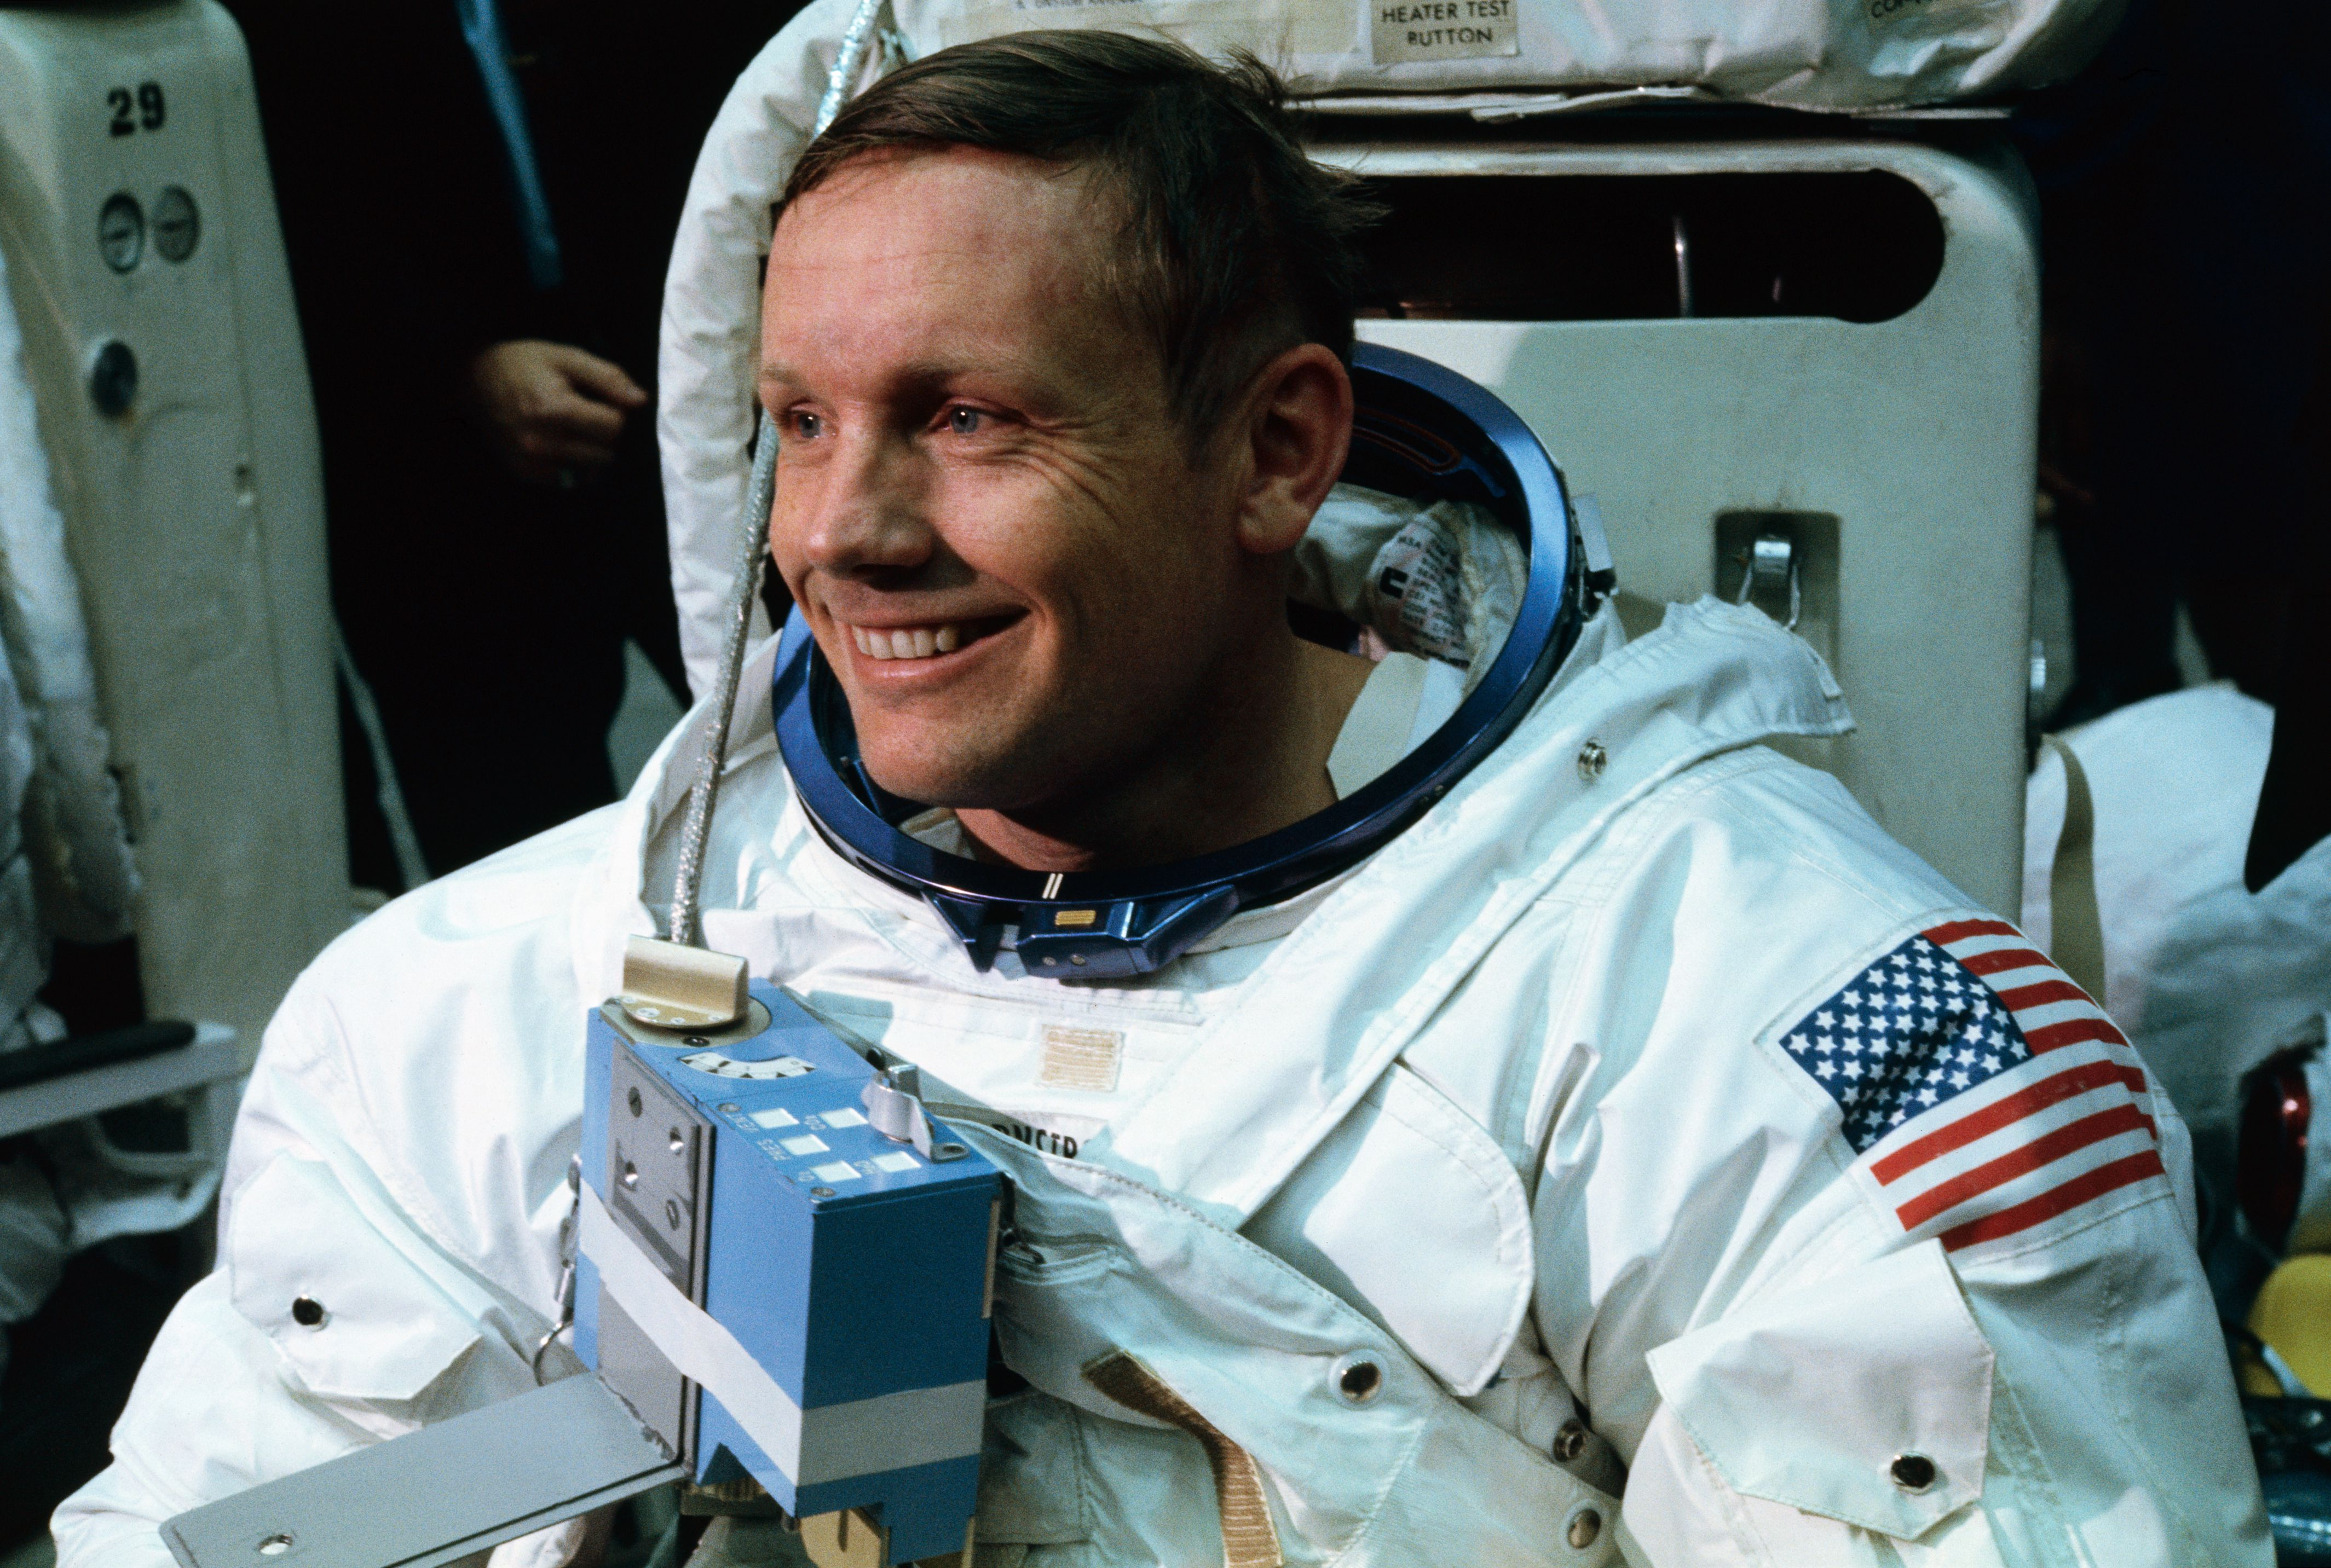 Neil Armstrong Training for Apollo 11 Mission